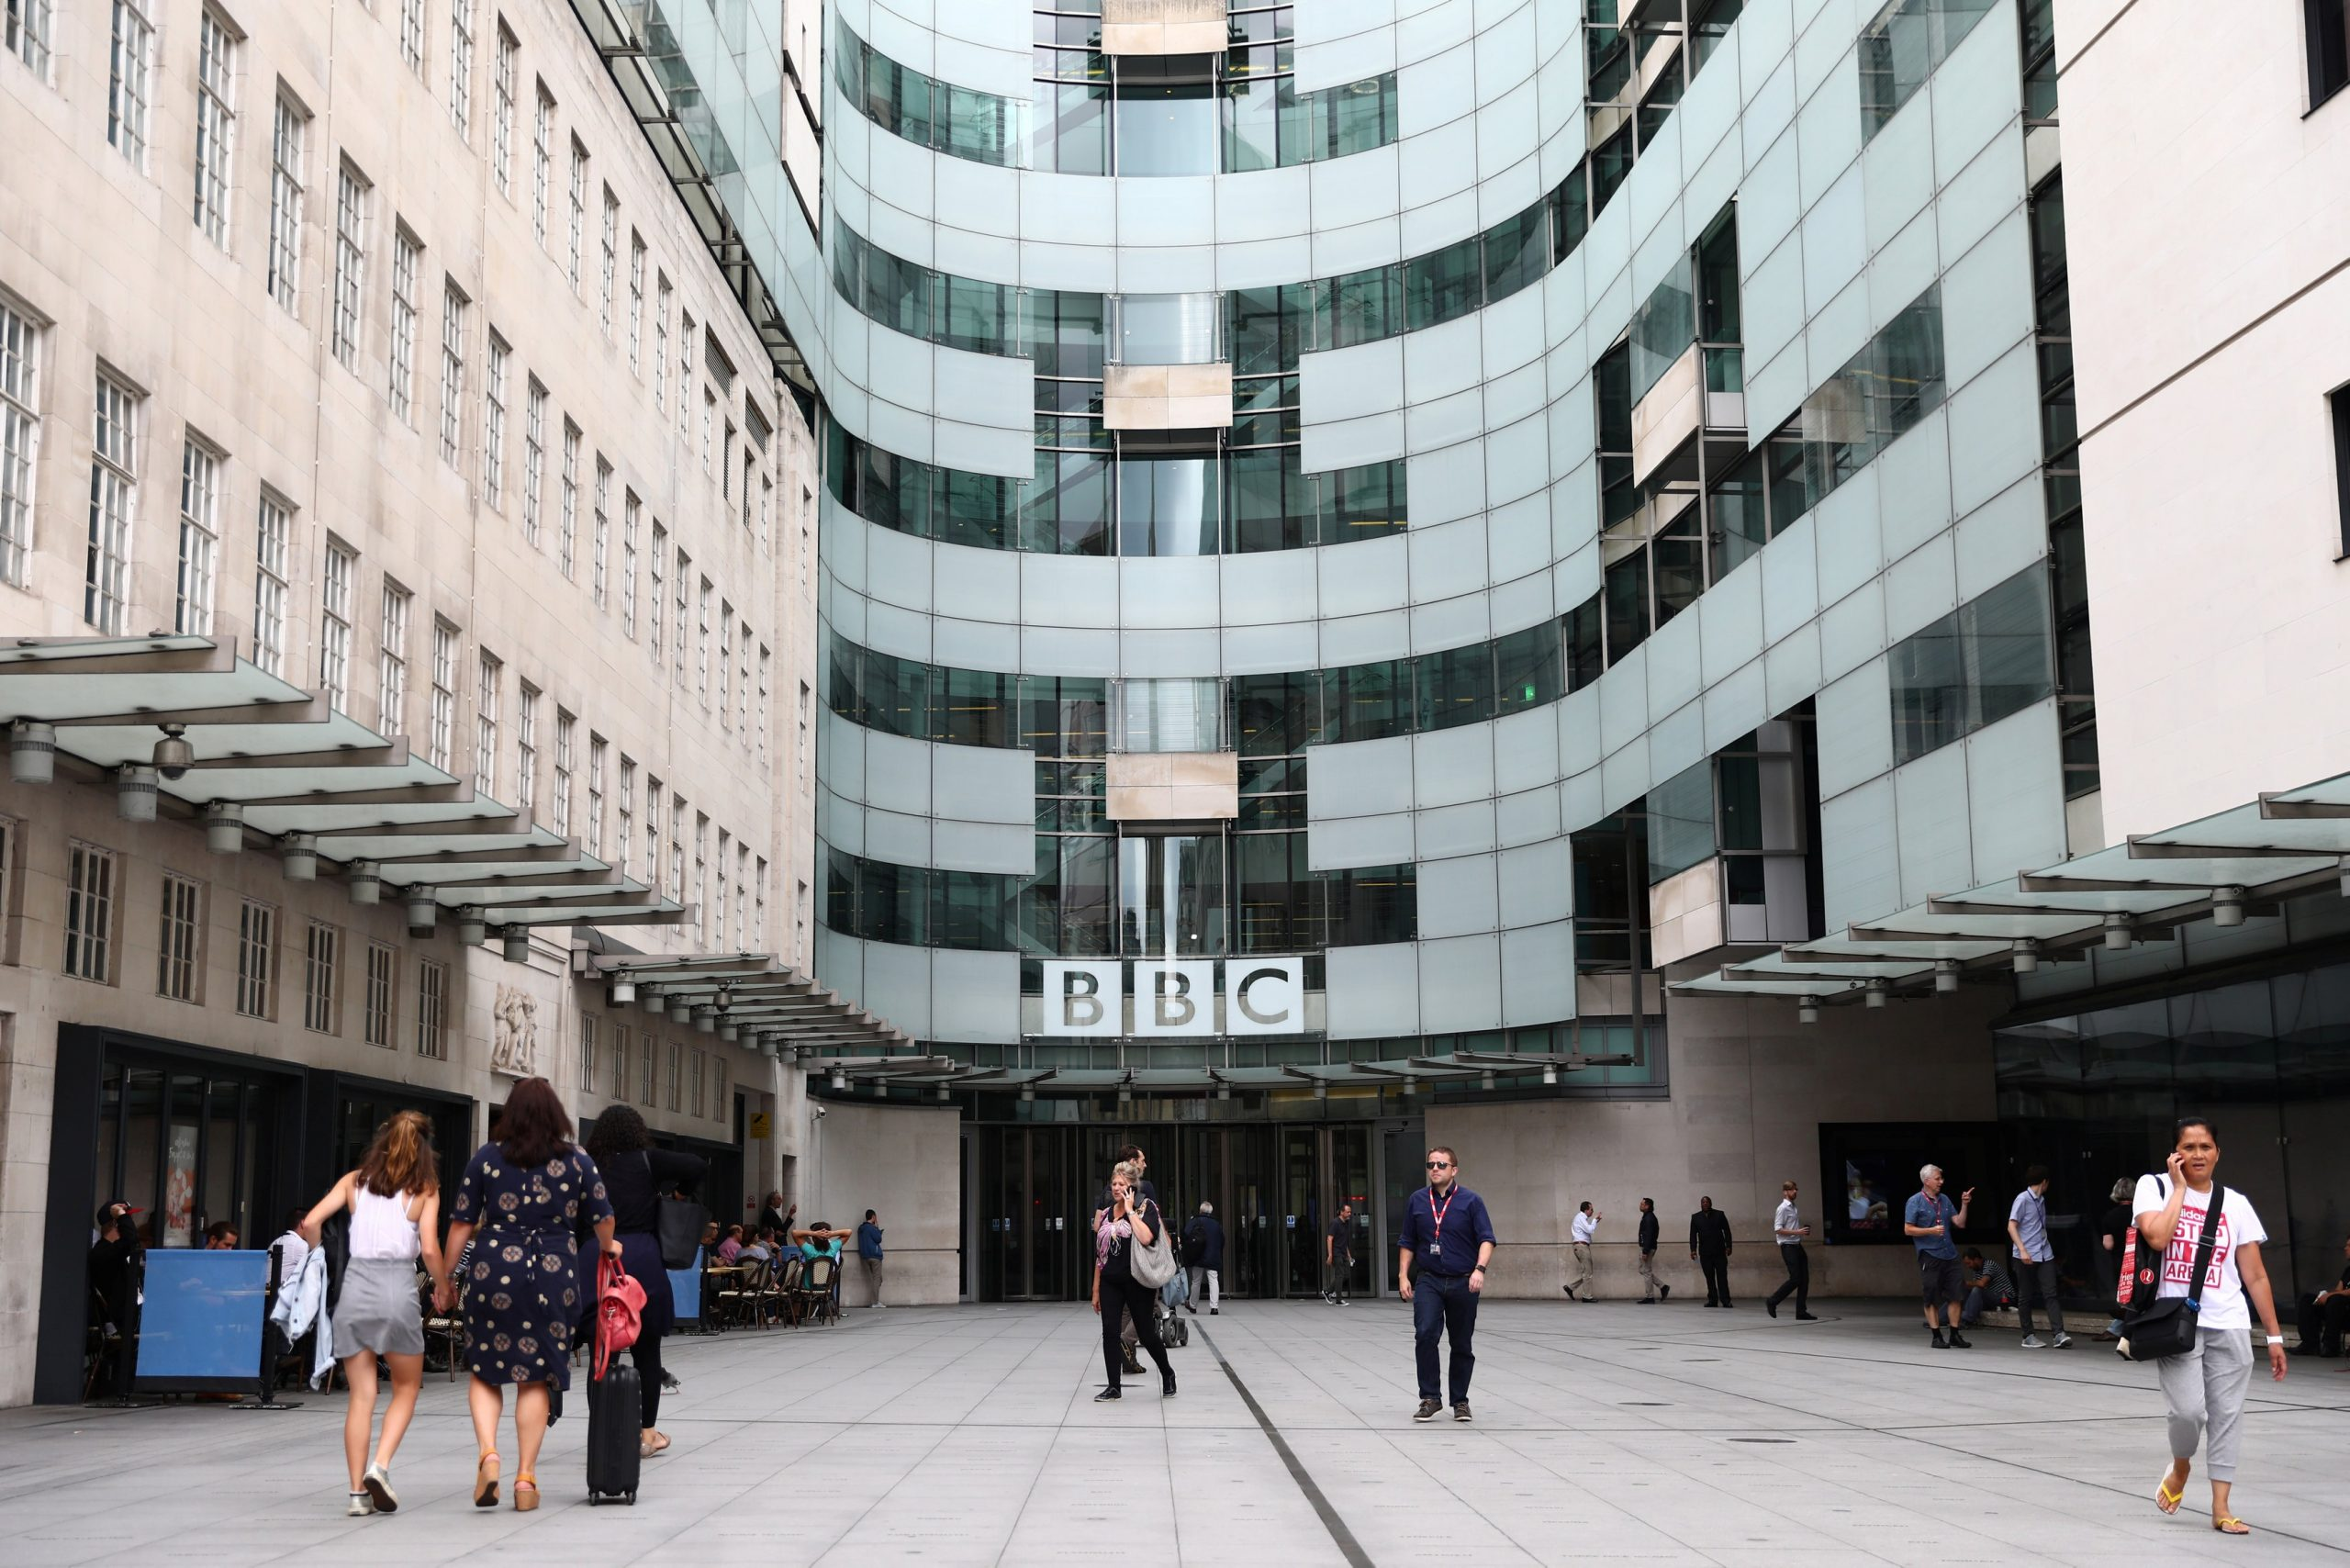 The BBC has been criticised for its reporting of the Kashmir situation